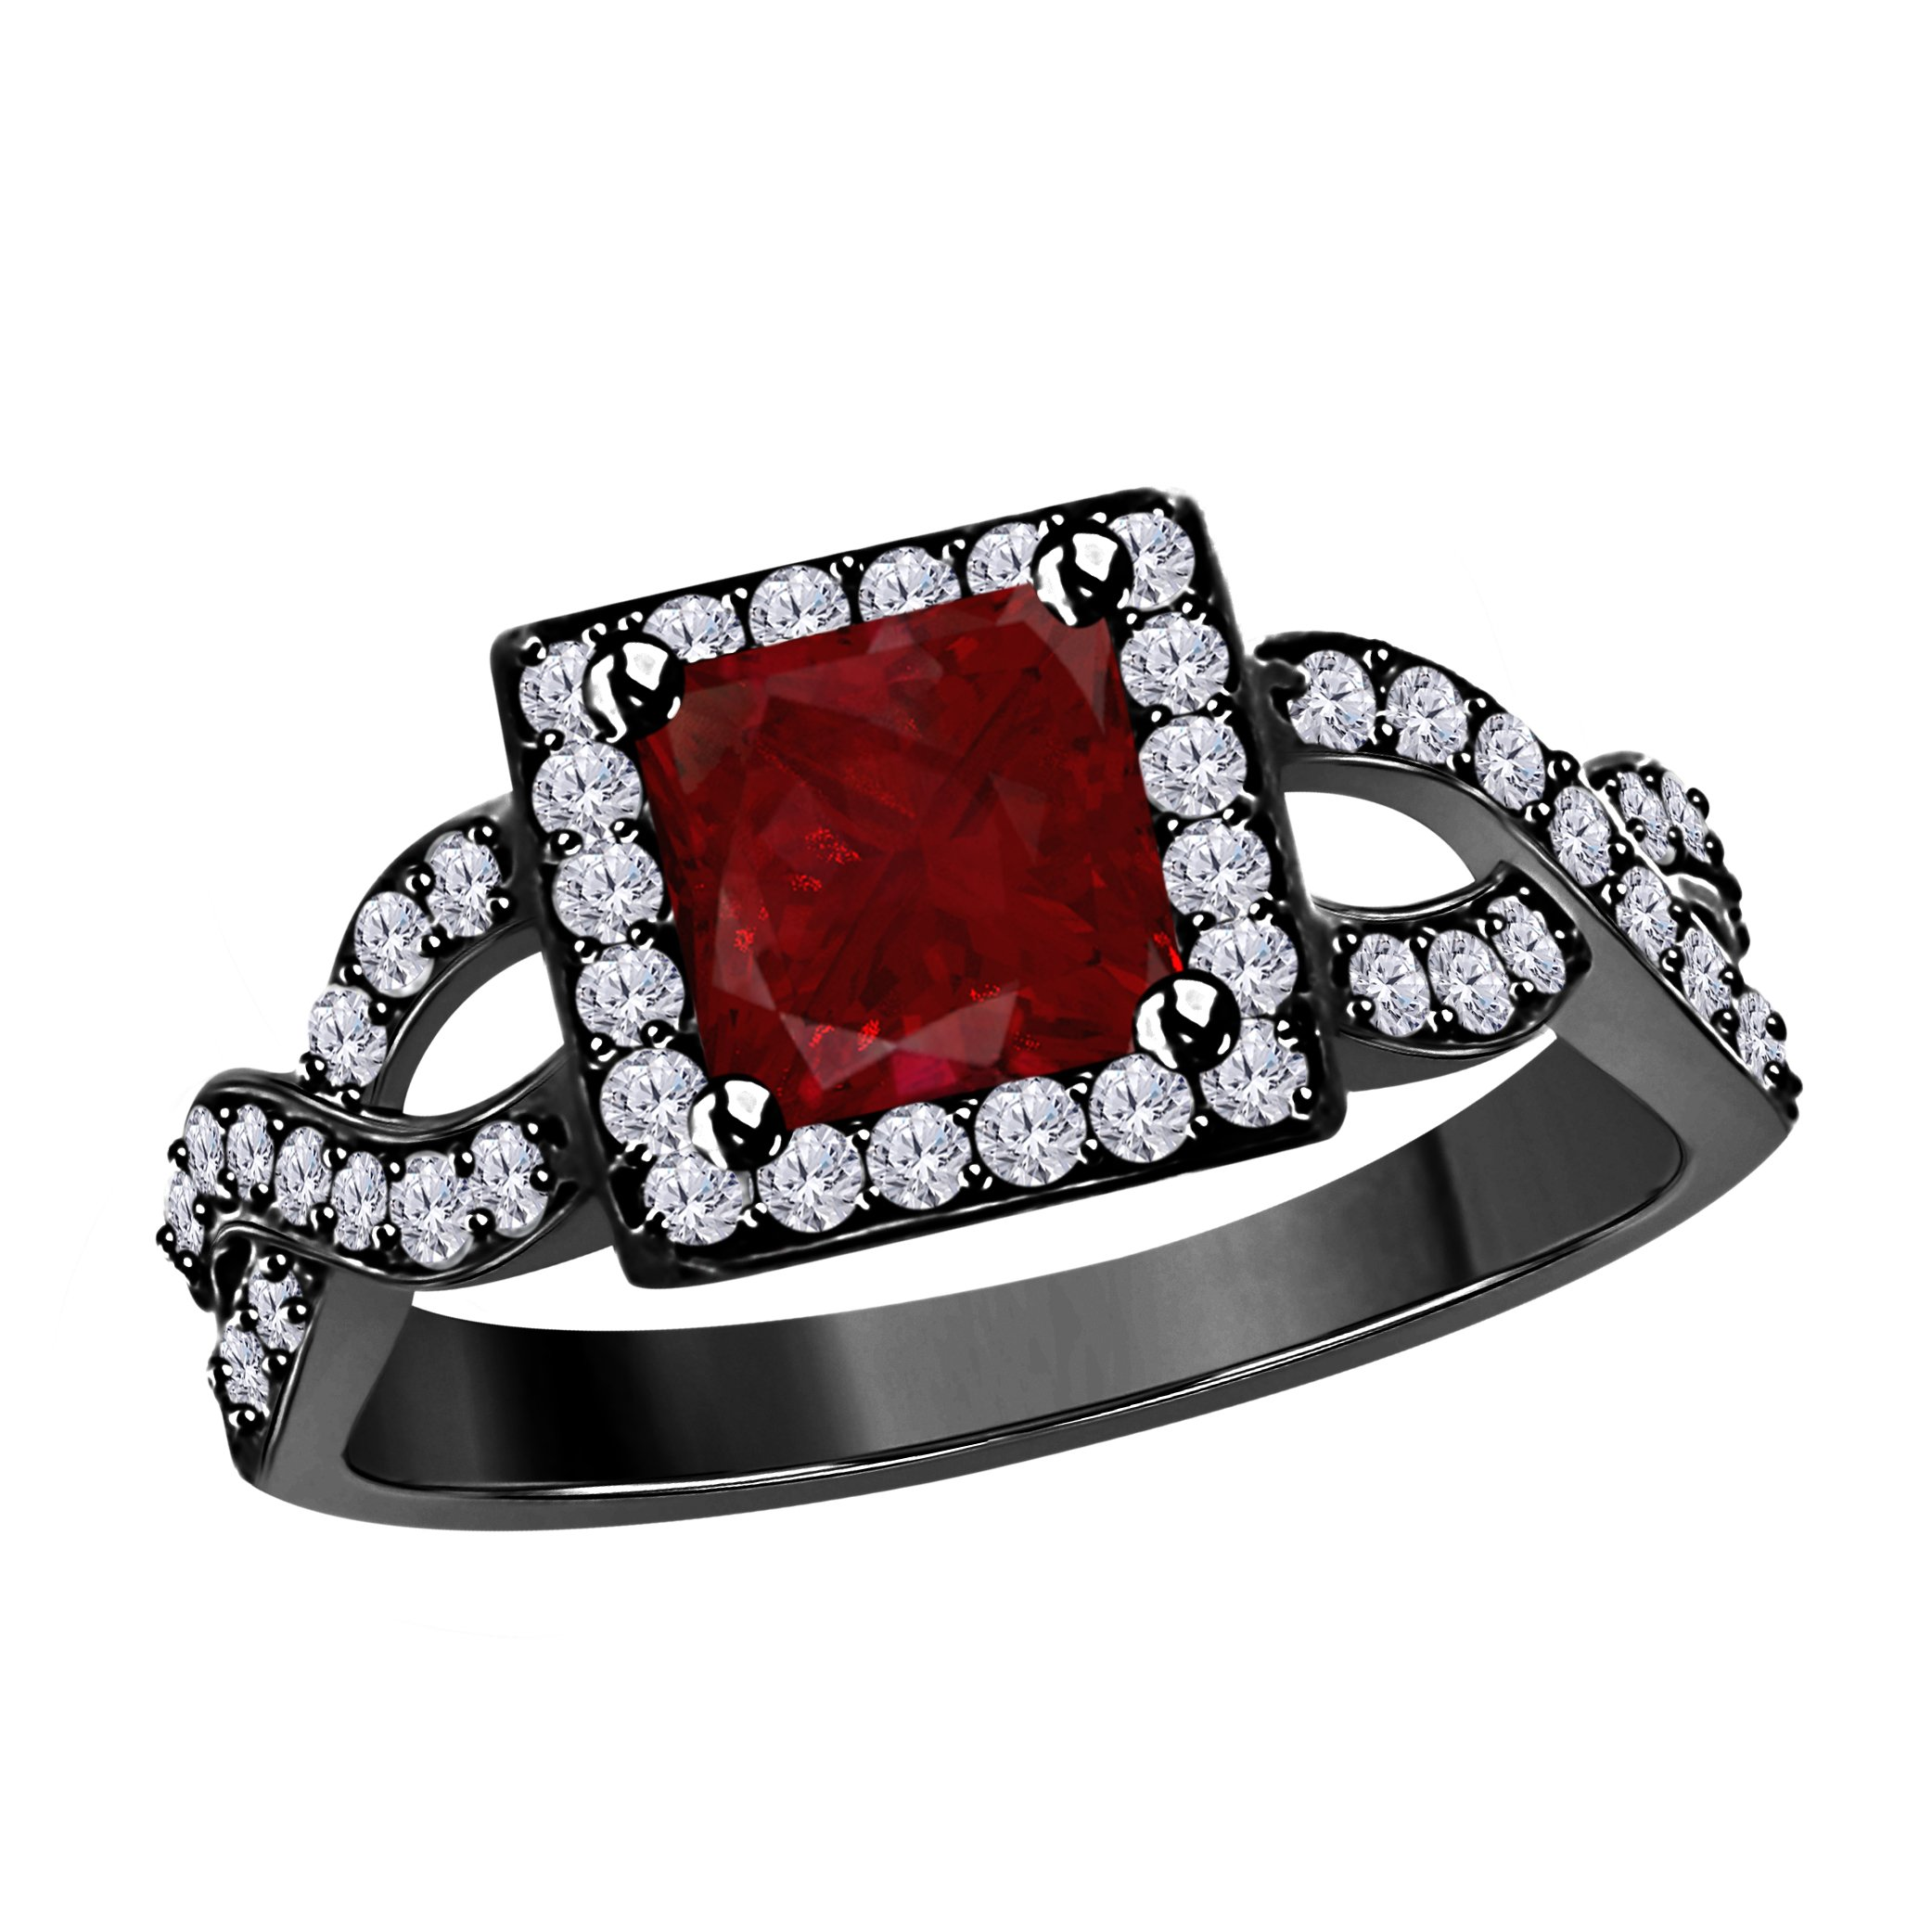 DreamJewels 2.00 Ct Princess Cut Halo Pave Eternity Lab Created Red Ruby & White CZ Split Shank Engagement Ring in 14k Black Gold Plated Size 4-12